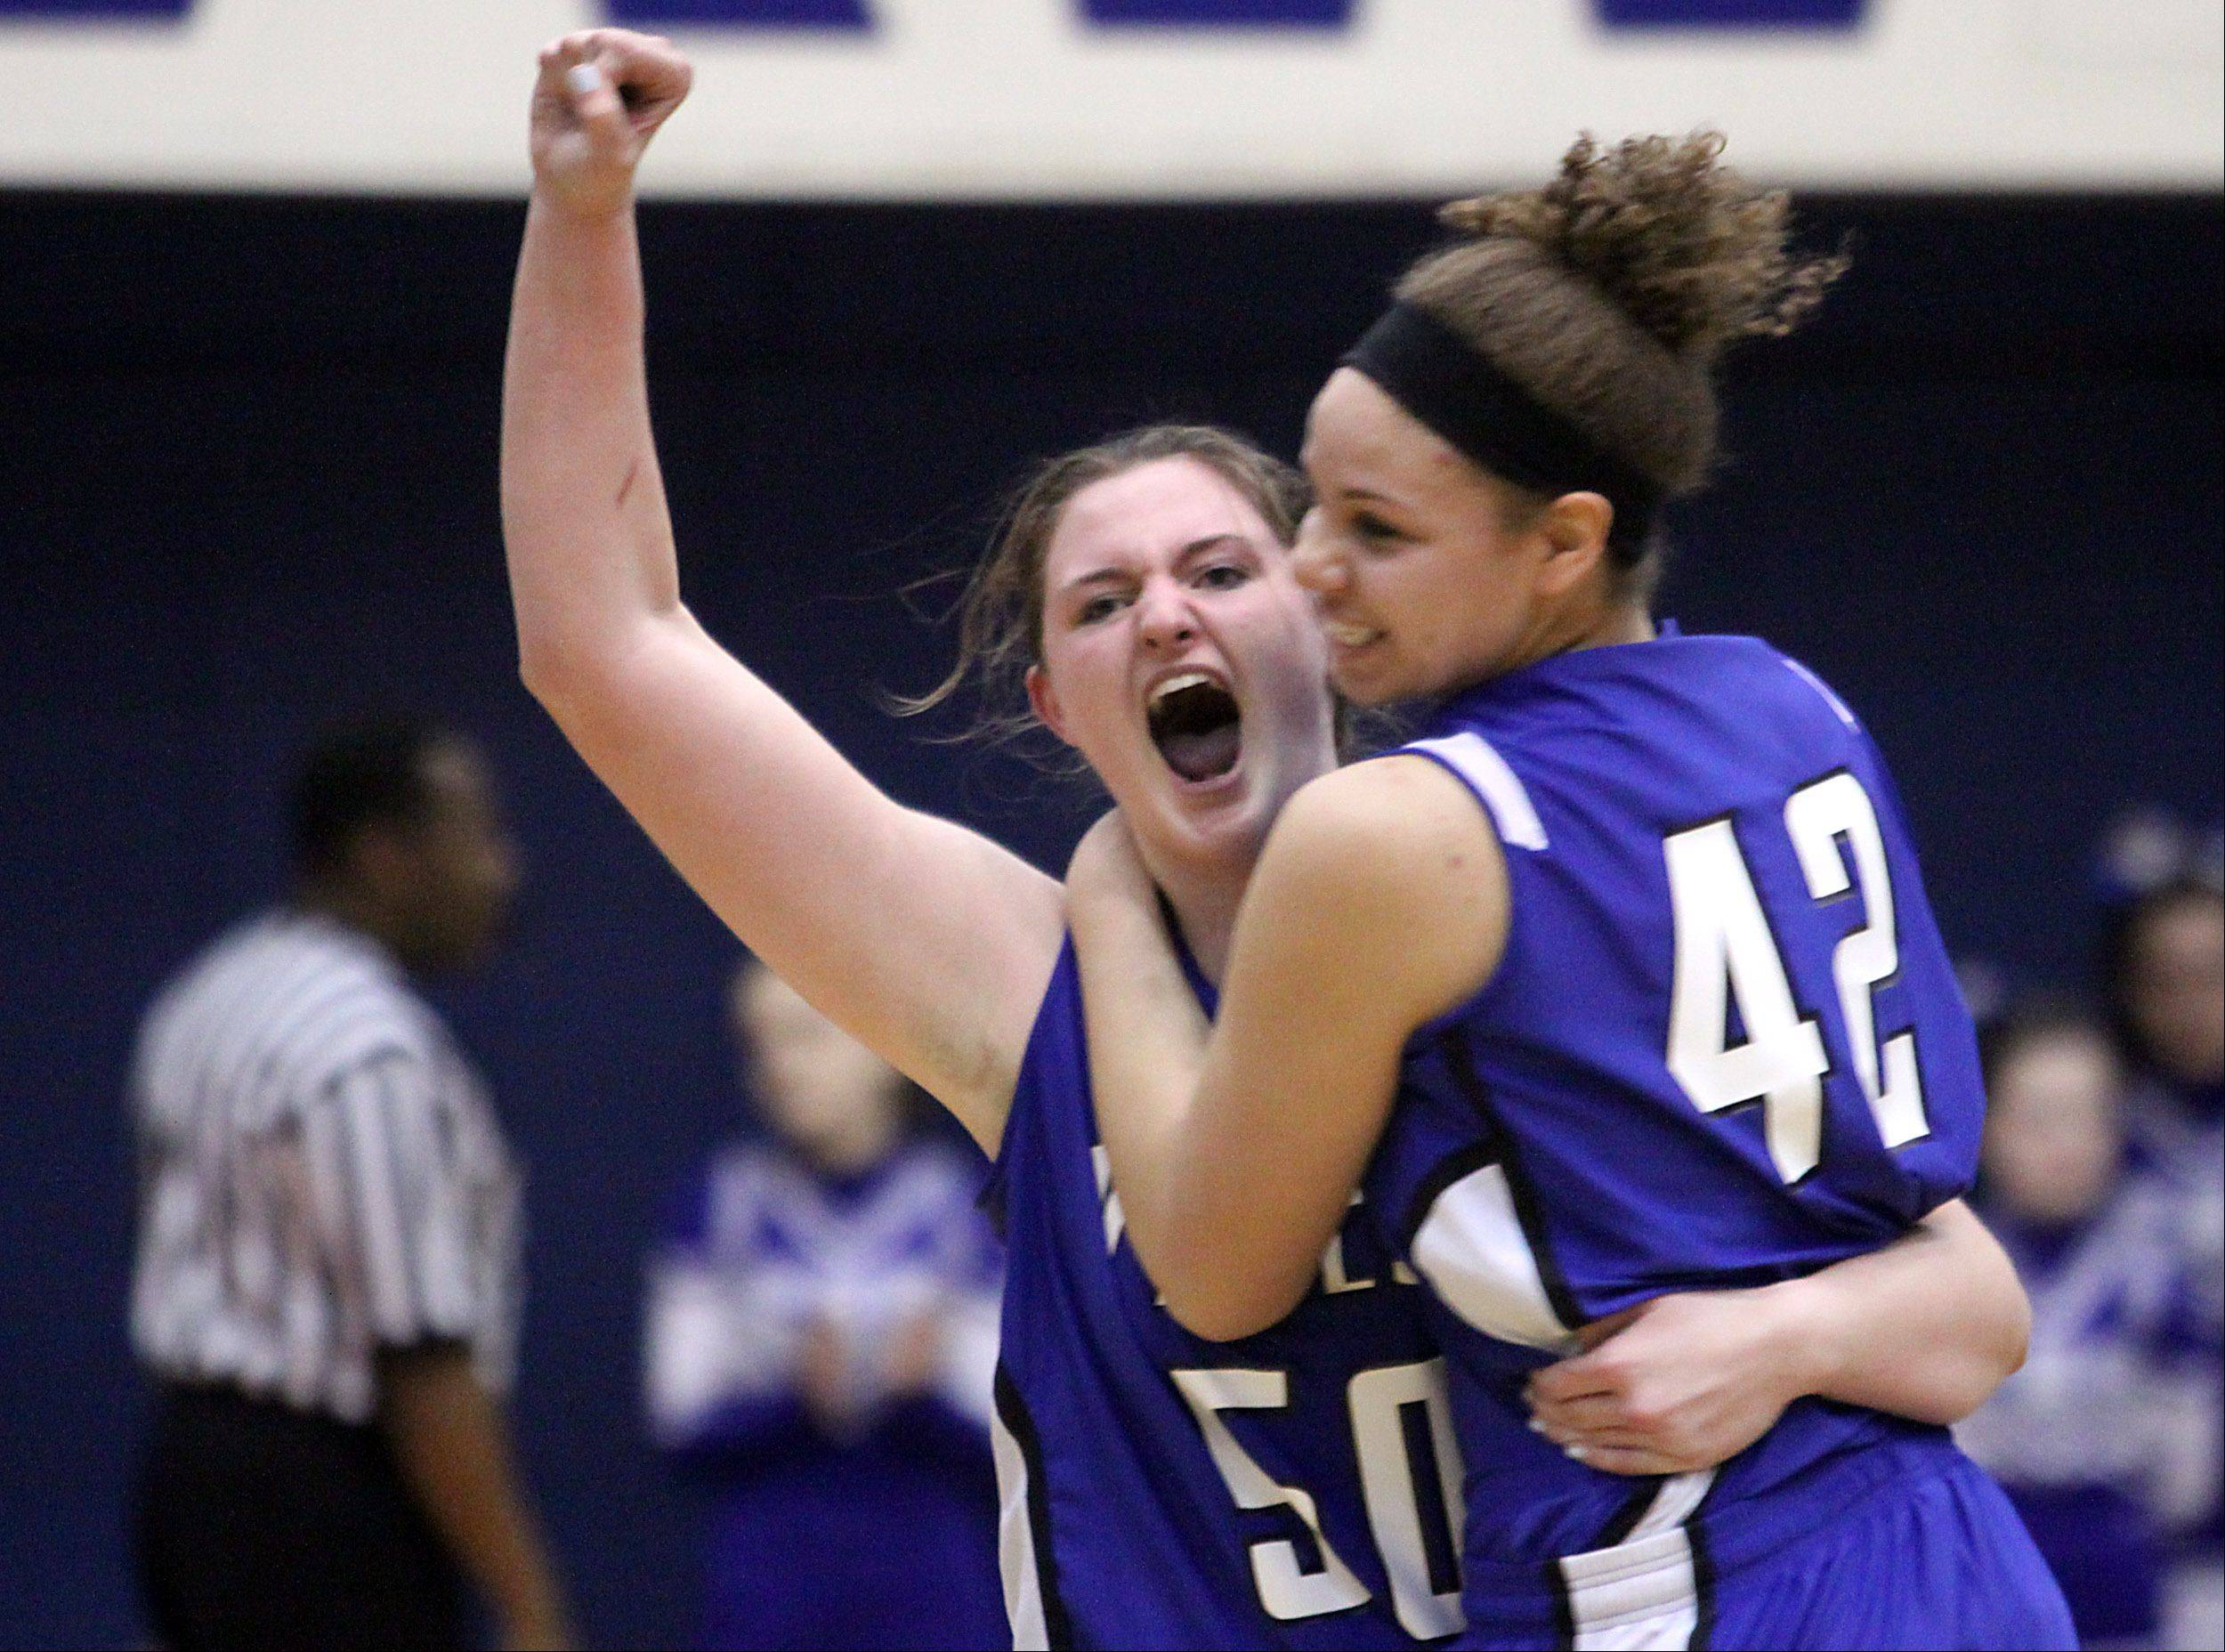 Vernon Hills� Meri Bennett-Swanson, left, and Lauren Webb celebrate their 39-31 Class 3A supersectional win over Burlington Central at Hoffman Estates High School on Monday night.